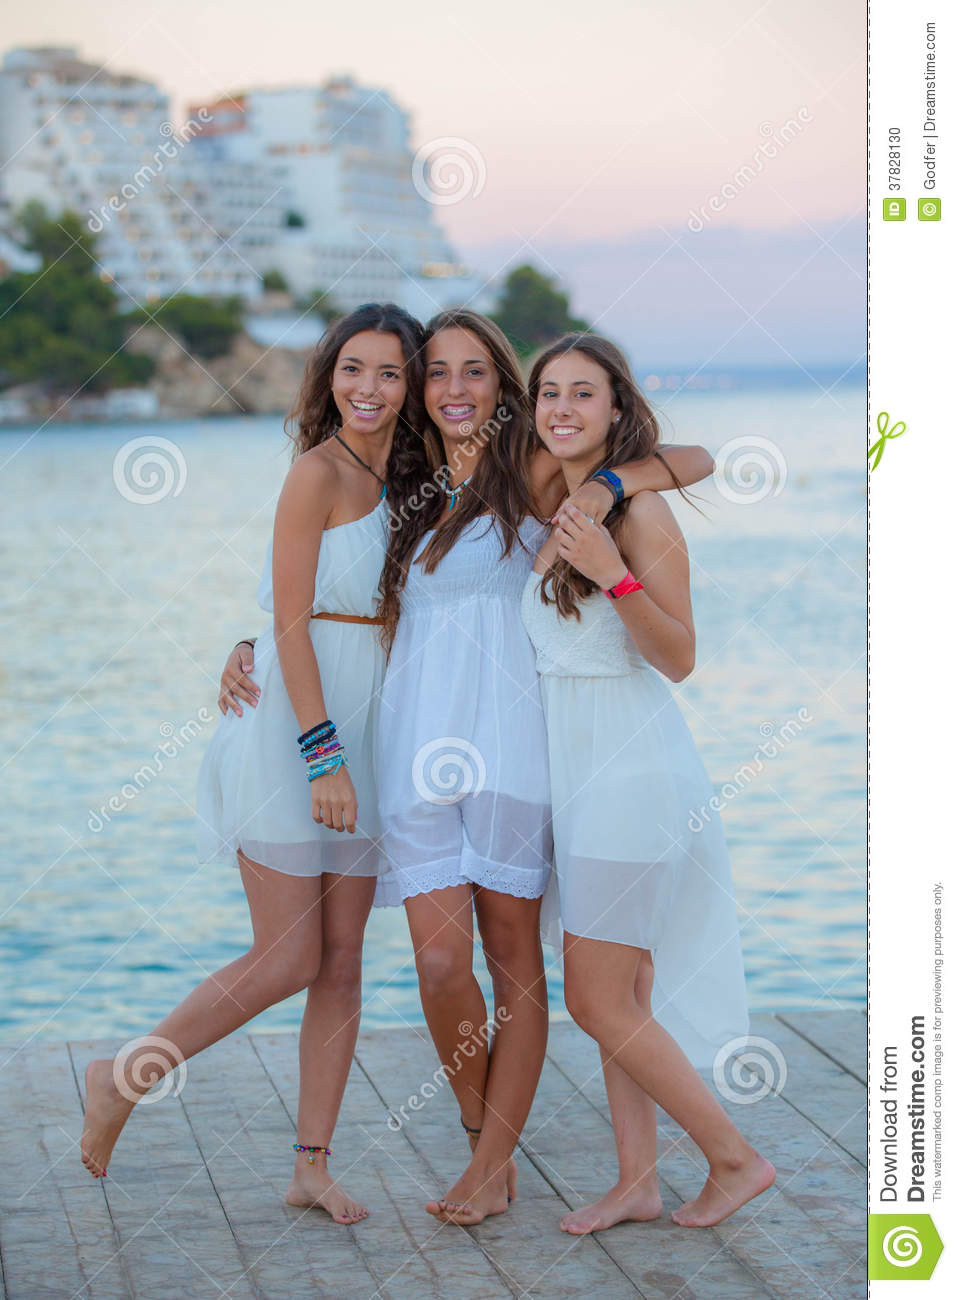 Mixed Race Teens On Summer Vacation Stock Photo